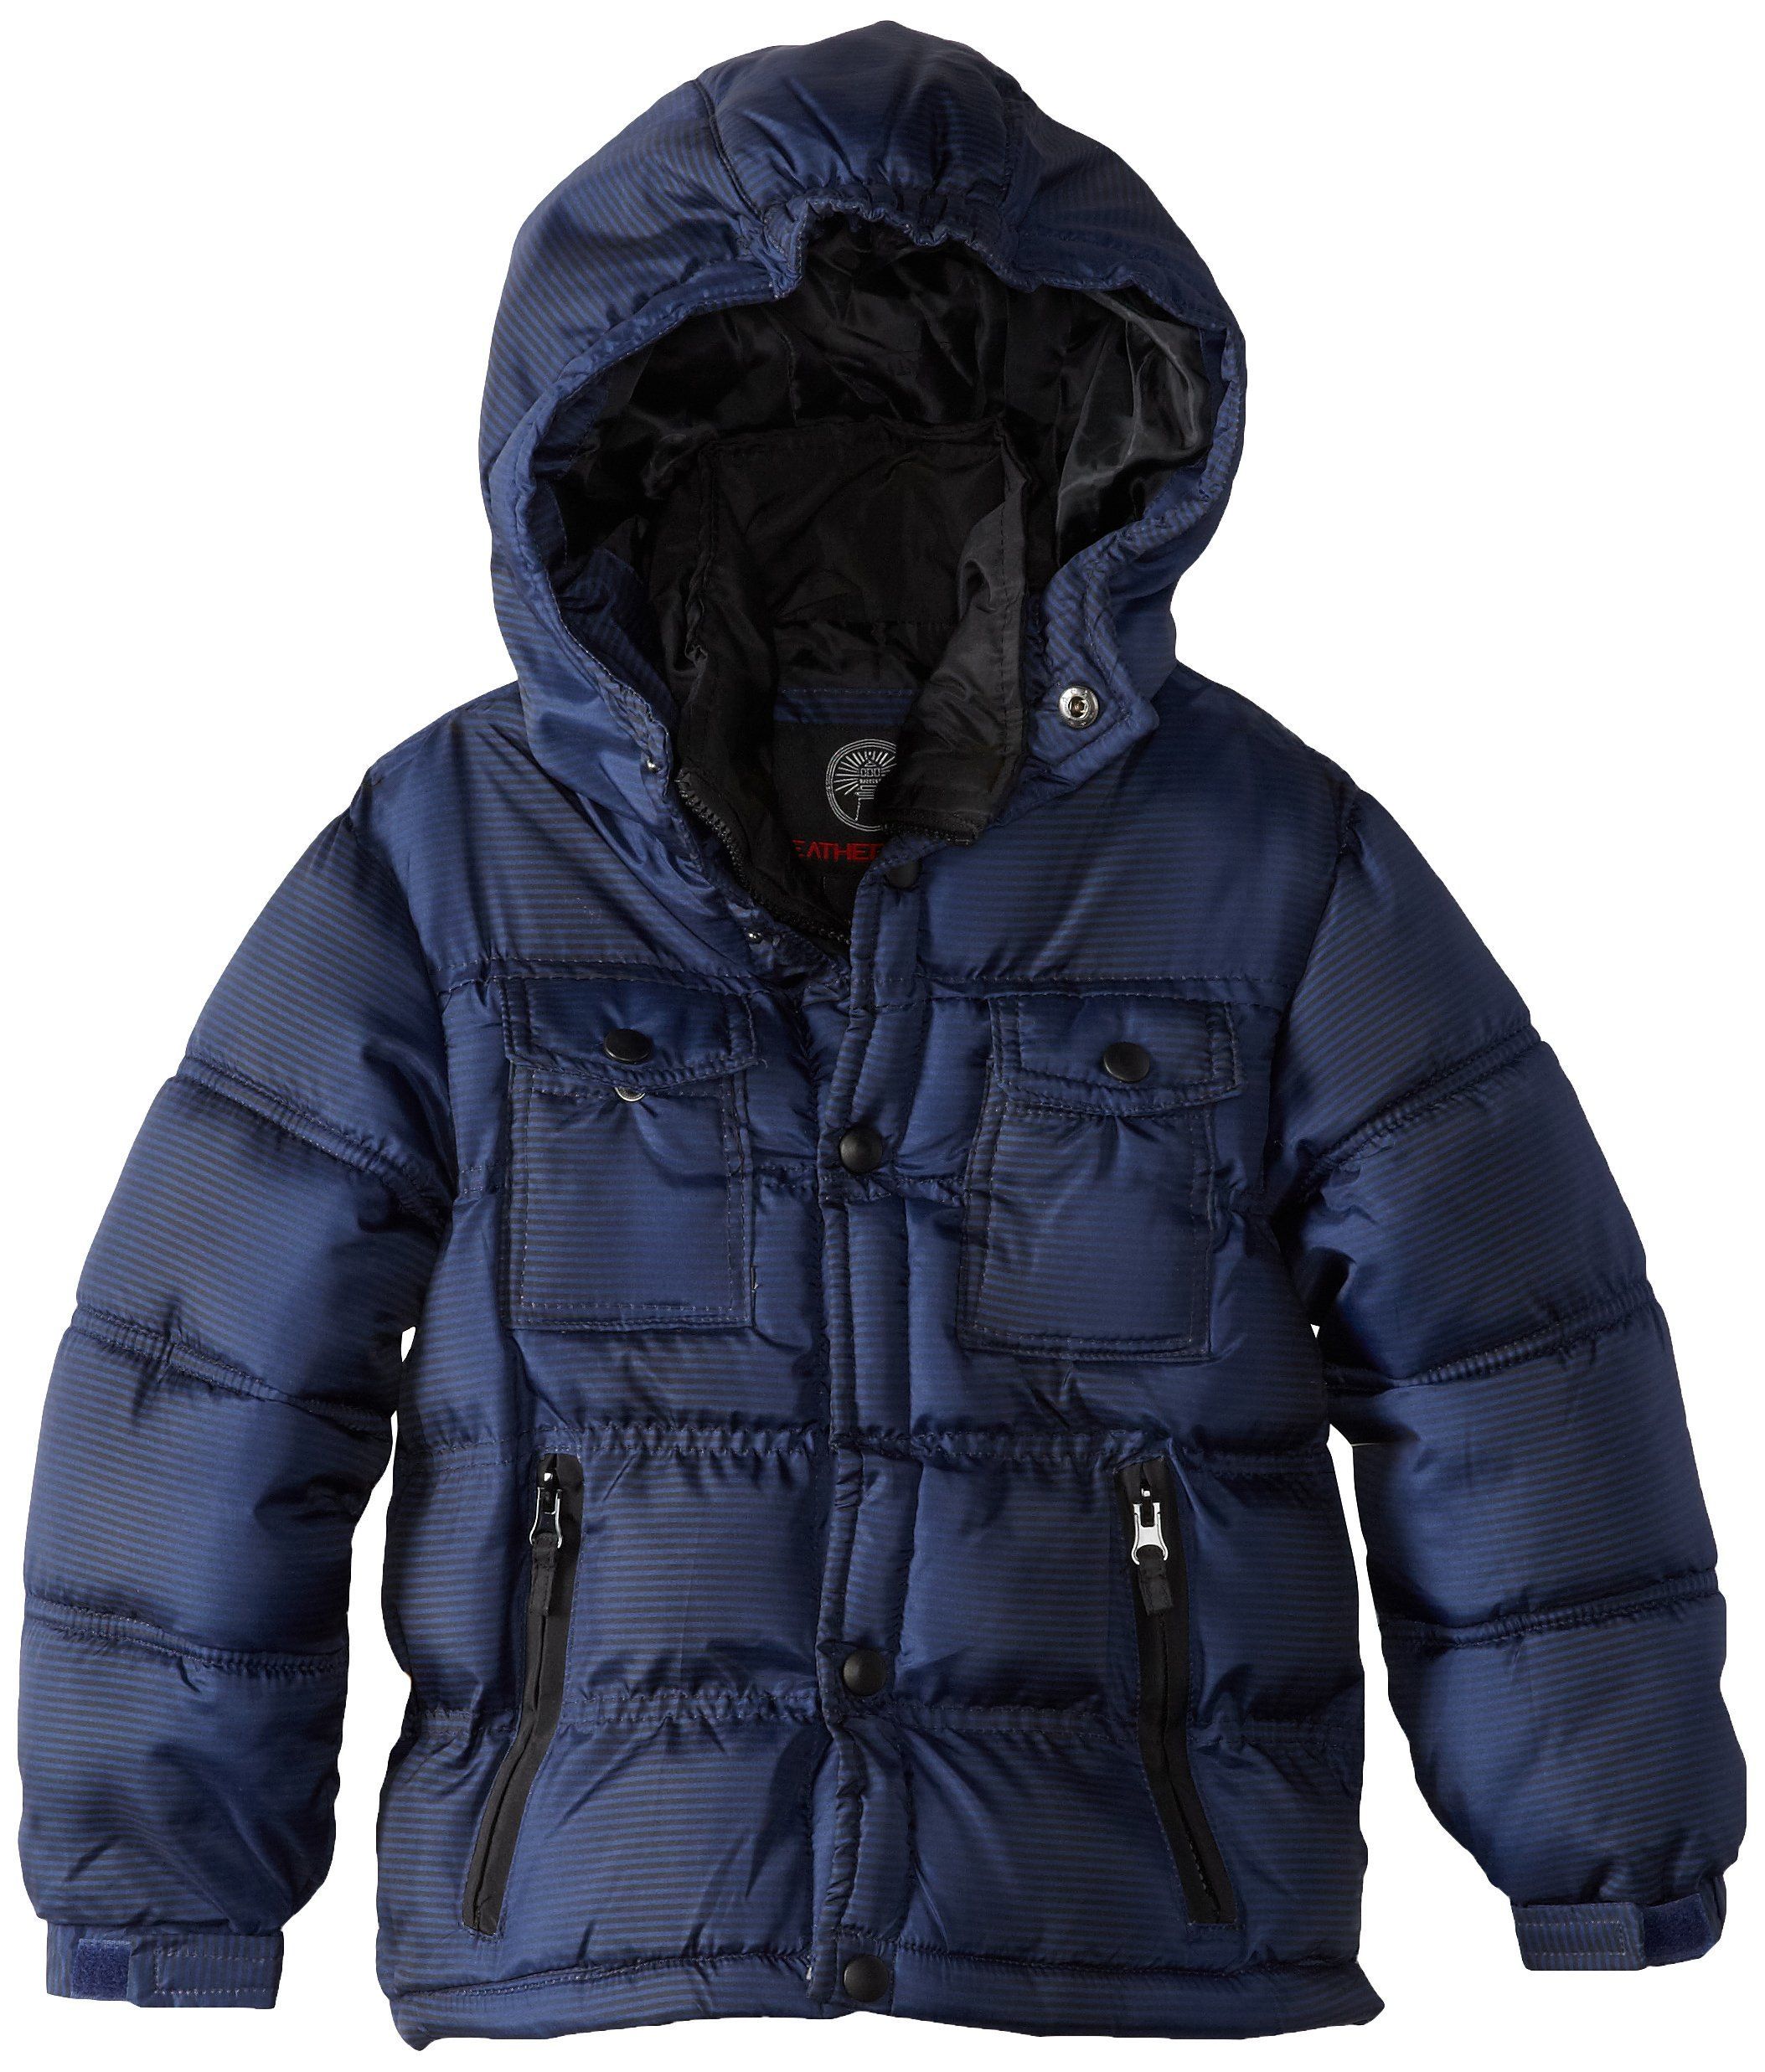 Weatherproof Little Boys Bubble Jacket With Attached Quilted Bib And Ribknit Collar Blue 6x Jackets Little Boys Winter Jackets [ 2474 x 2107 Pixel ]